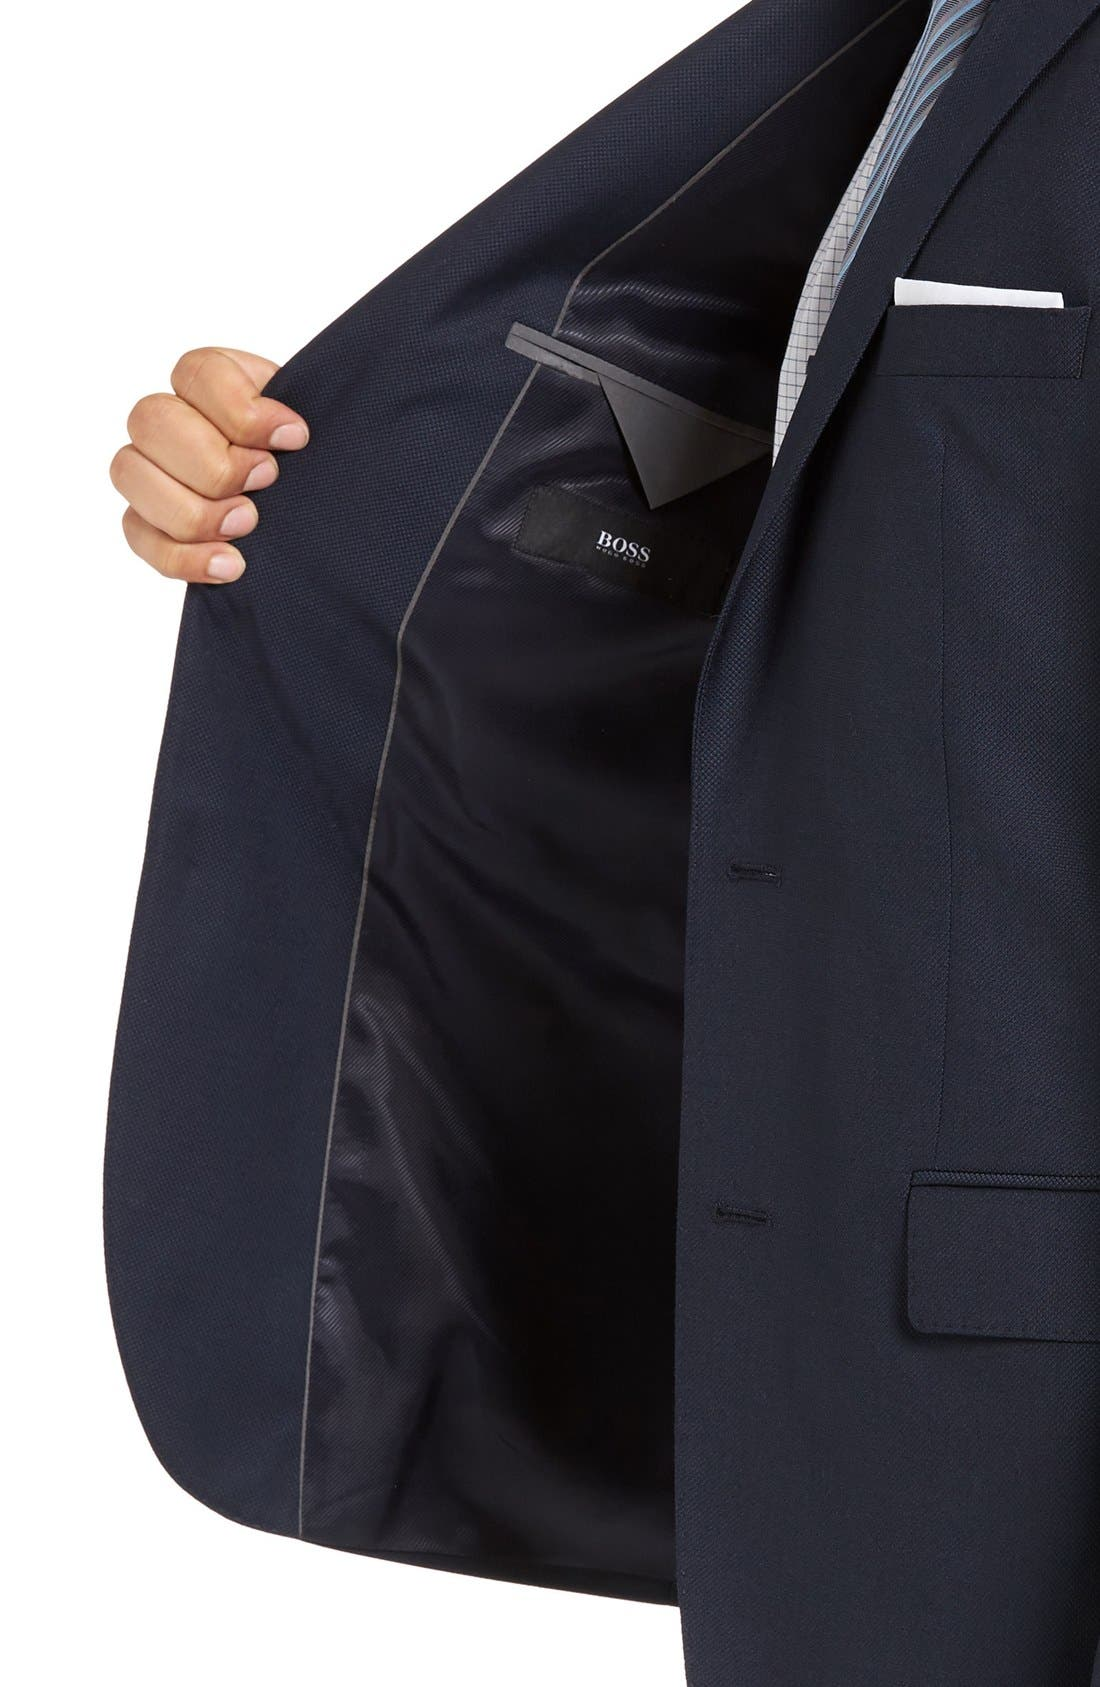 James Classic Fit Wool Blazer,                             Alternate thumbnail 5, color,                             410